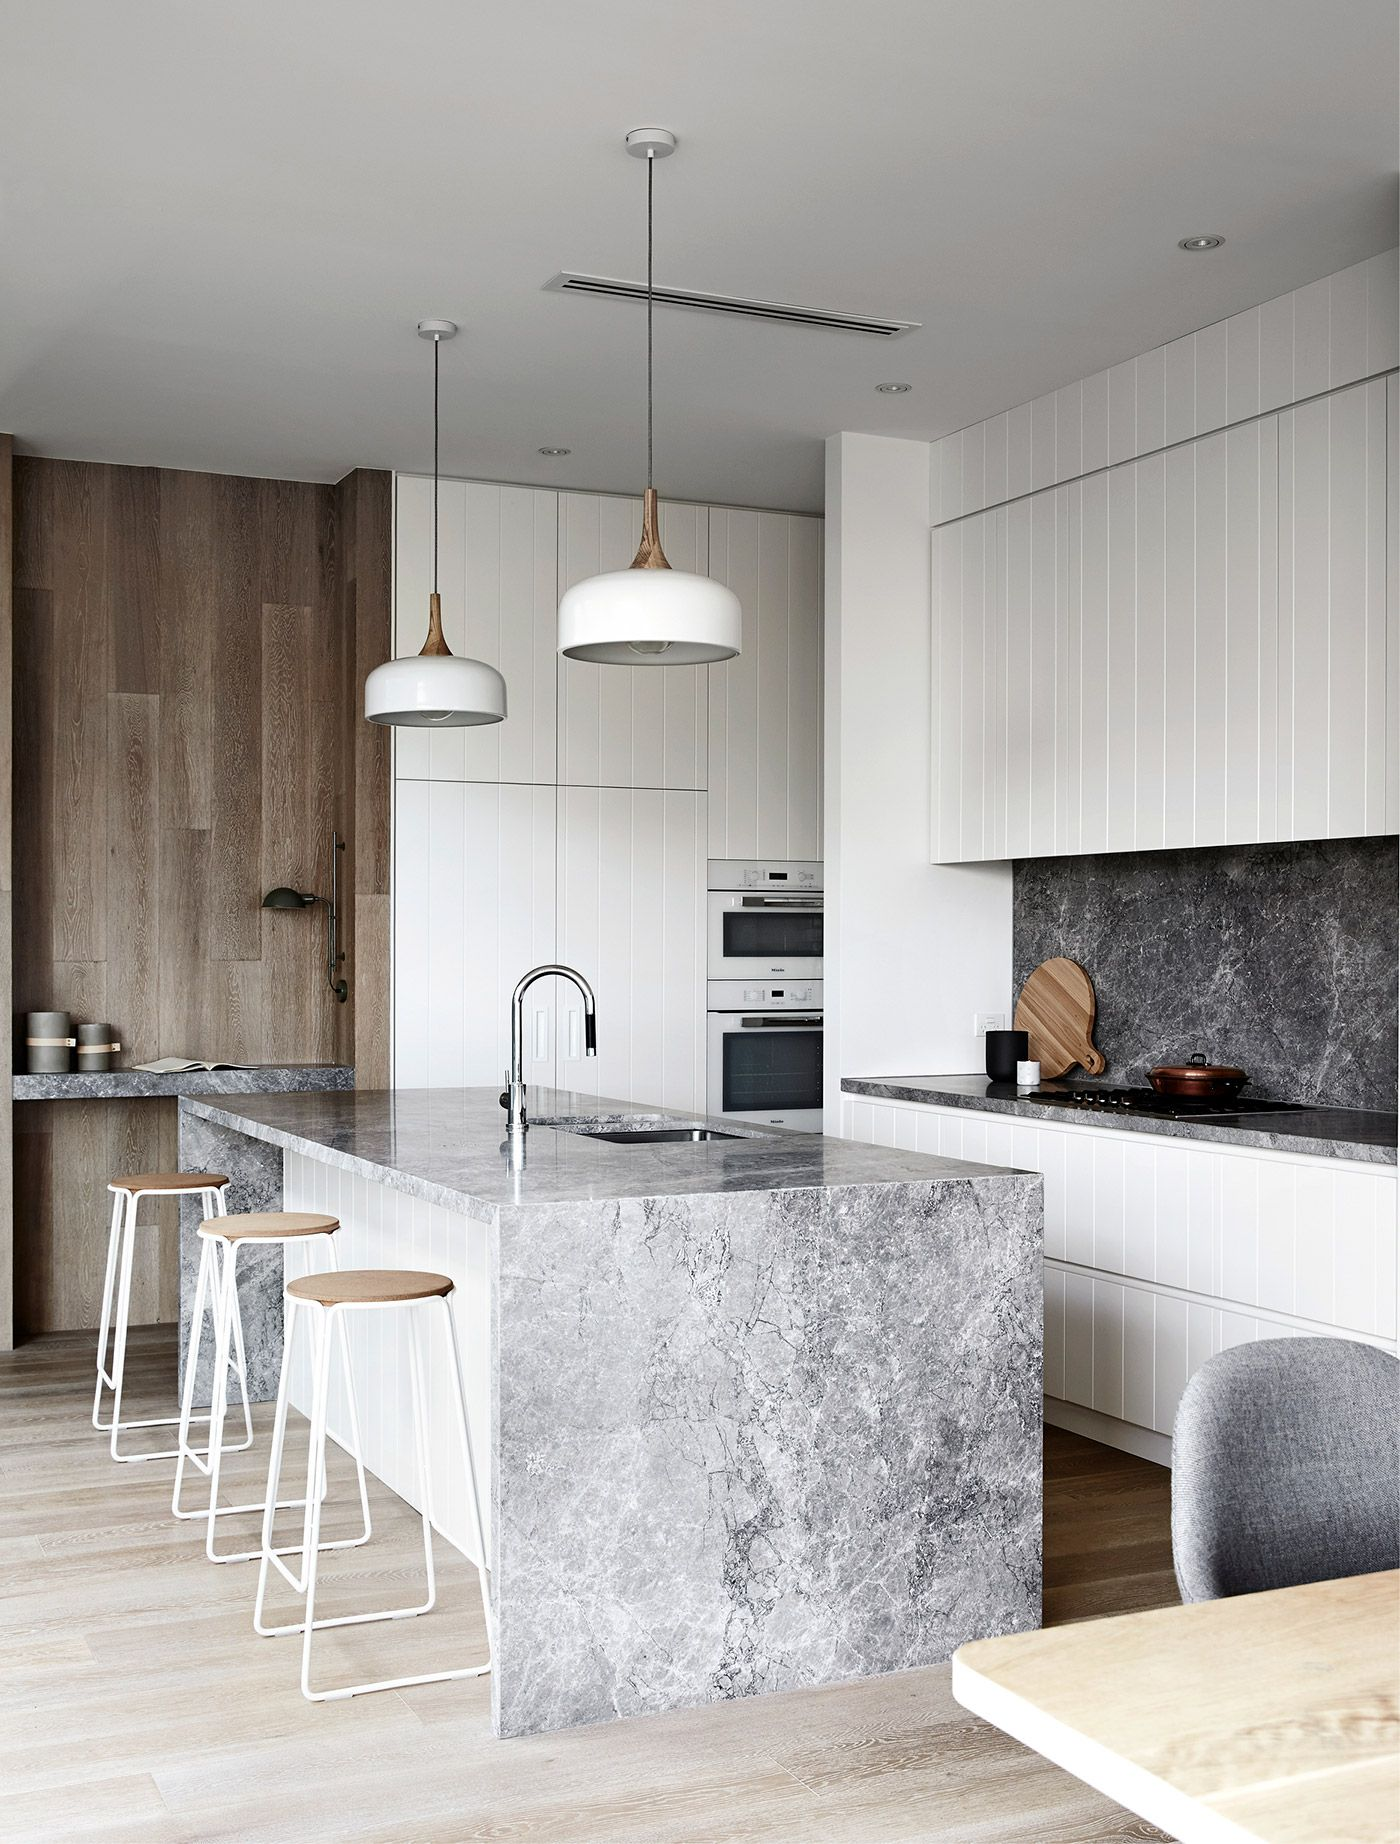 modern kitchen minimal kitchen scandinavian kitchen